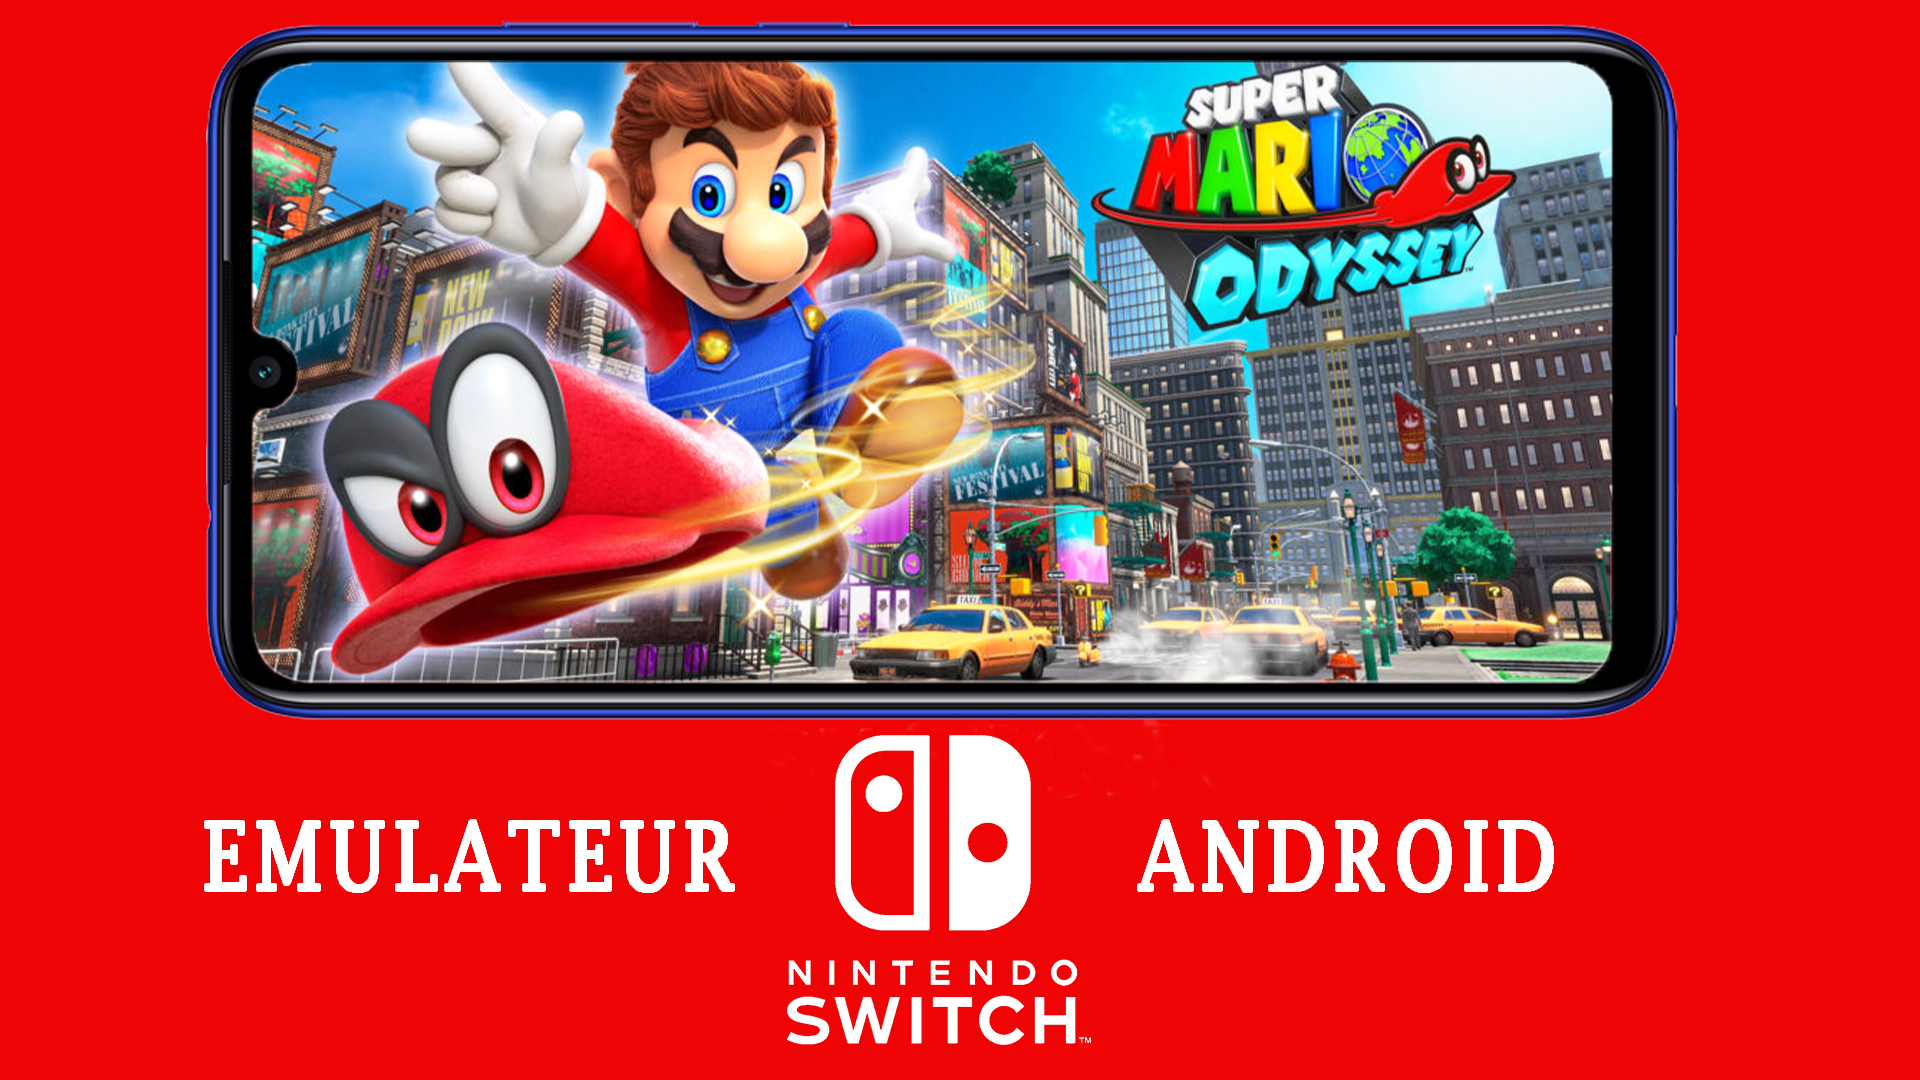 Telecharger emulateur nintendo switch pour android